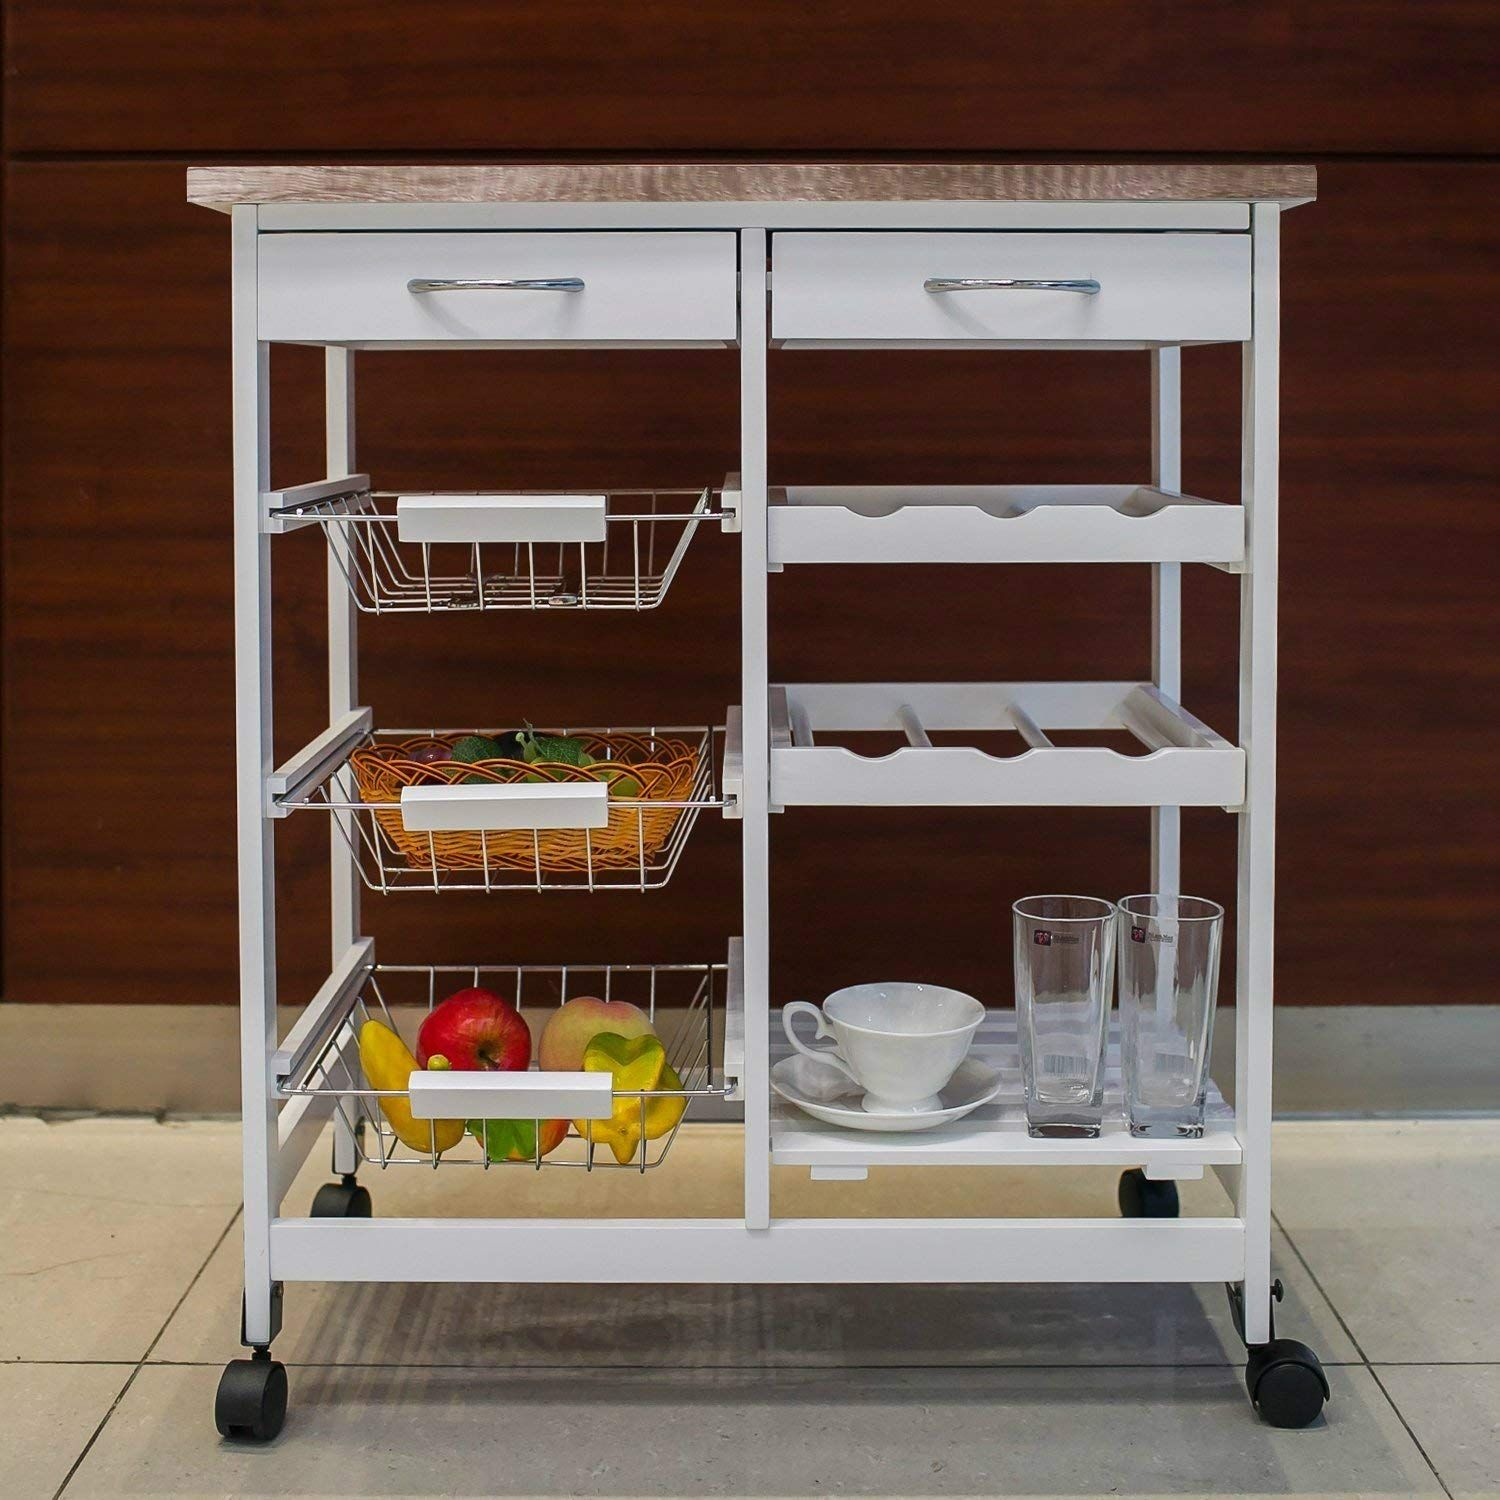 Kitchen Storage Cart Island Rolling On Wheels With Wine Rack Shelves Drawers And Baskets Wood Top W Kitchen Storage Cart Kitchen Cart Kitchen Island Storage